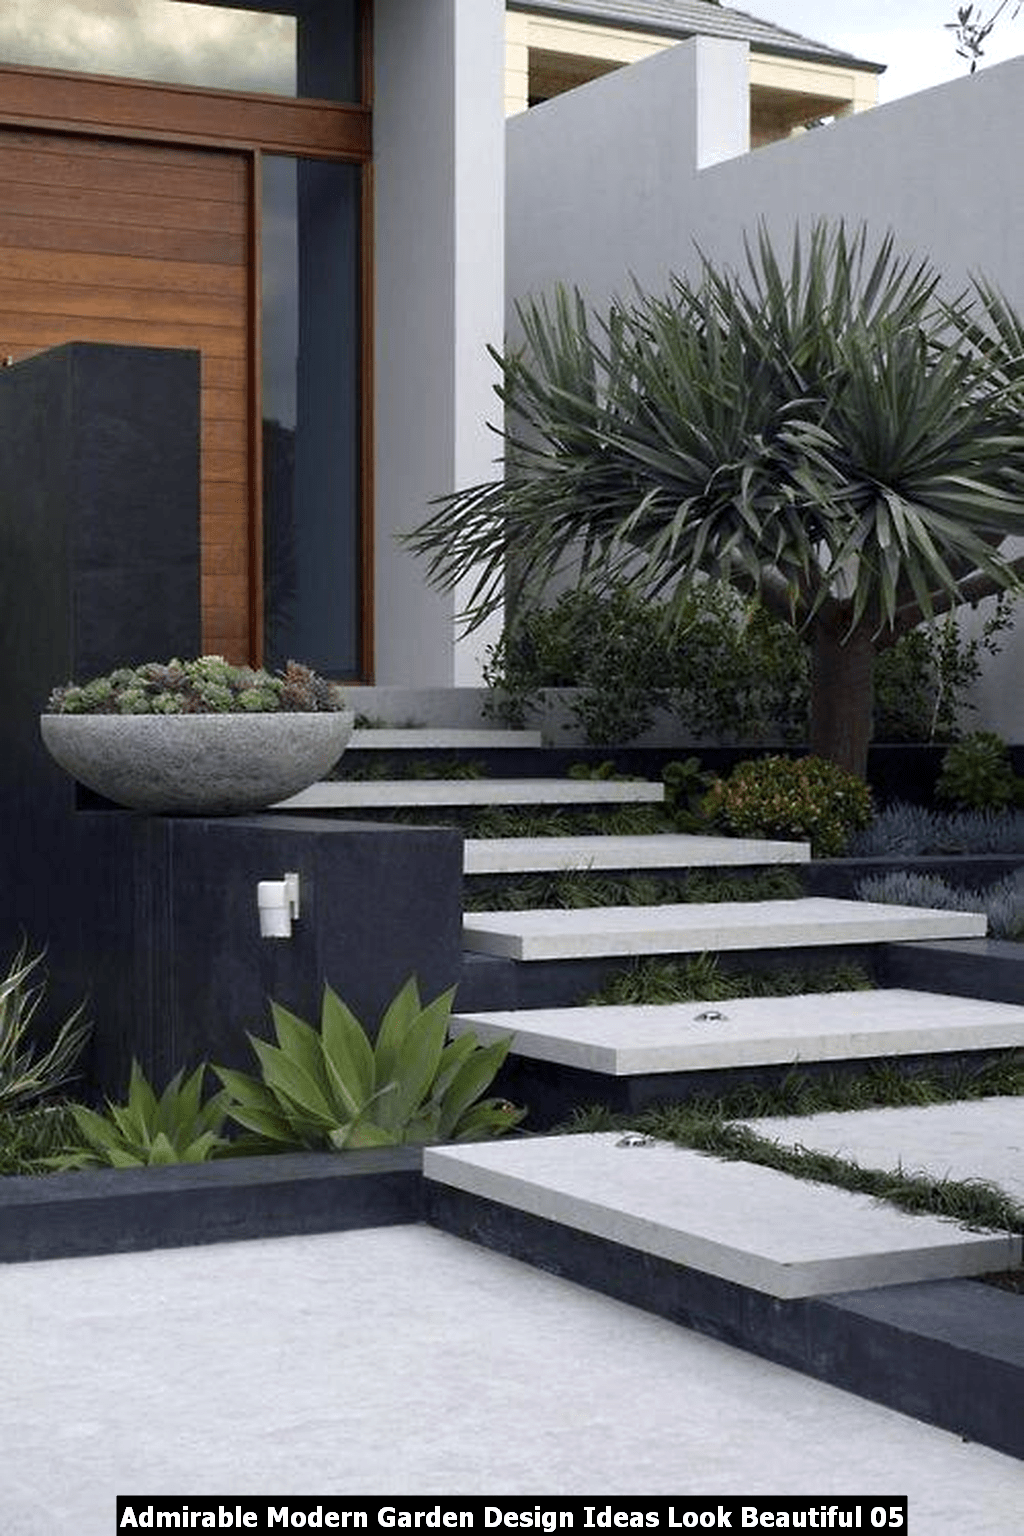 Admirable Modern Garden Design Ideas Look Beautiful 05